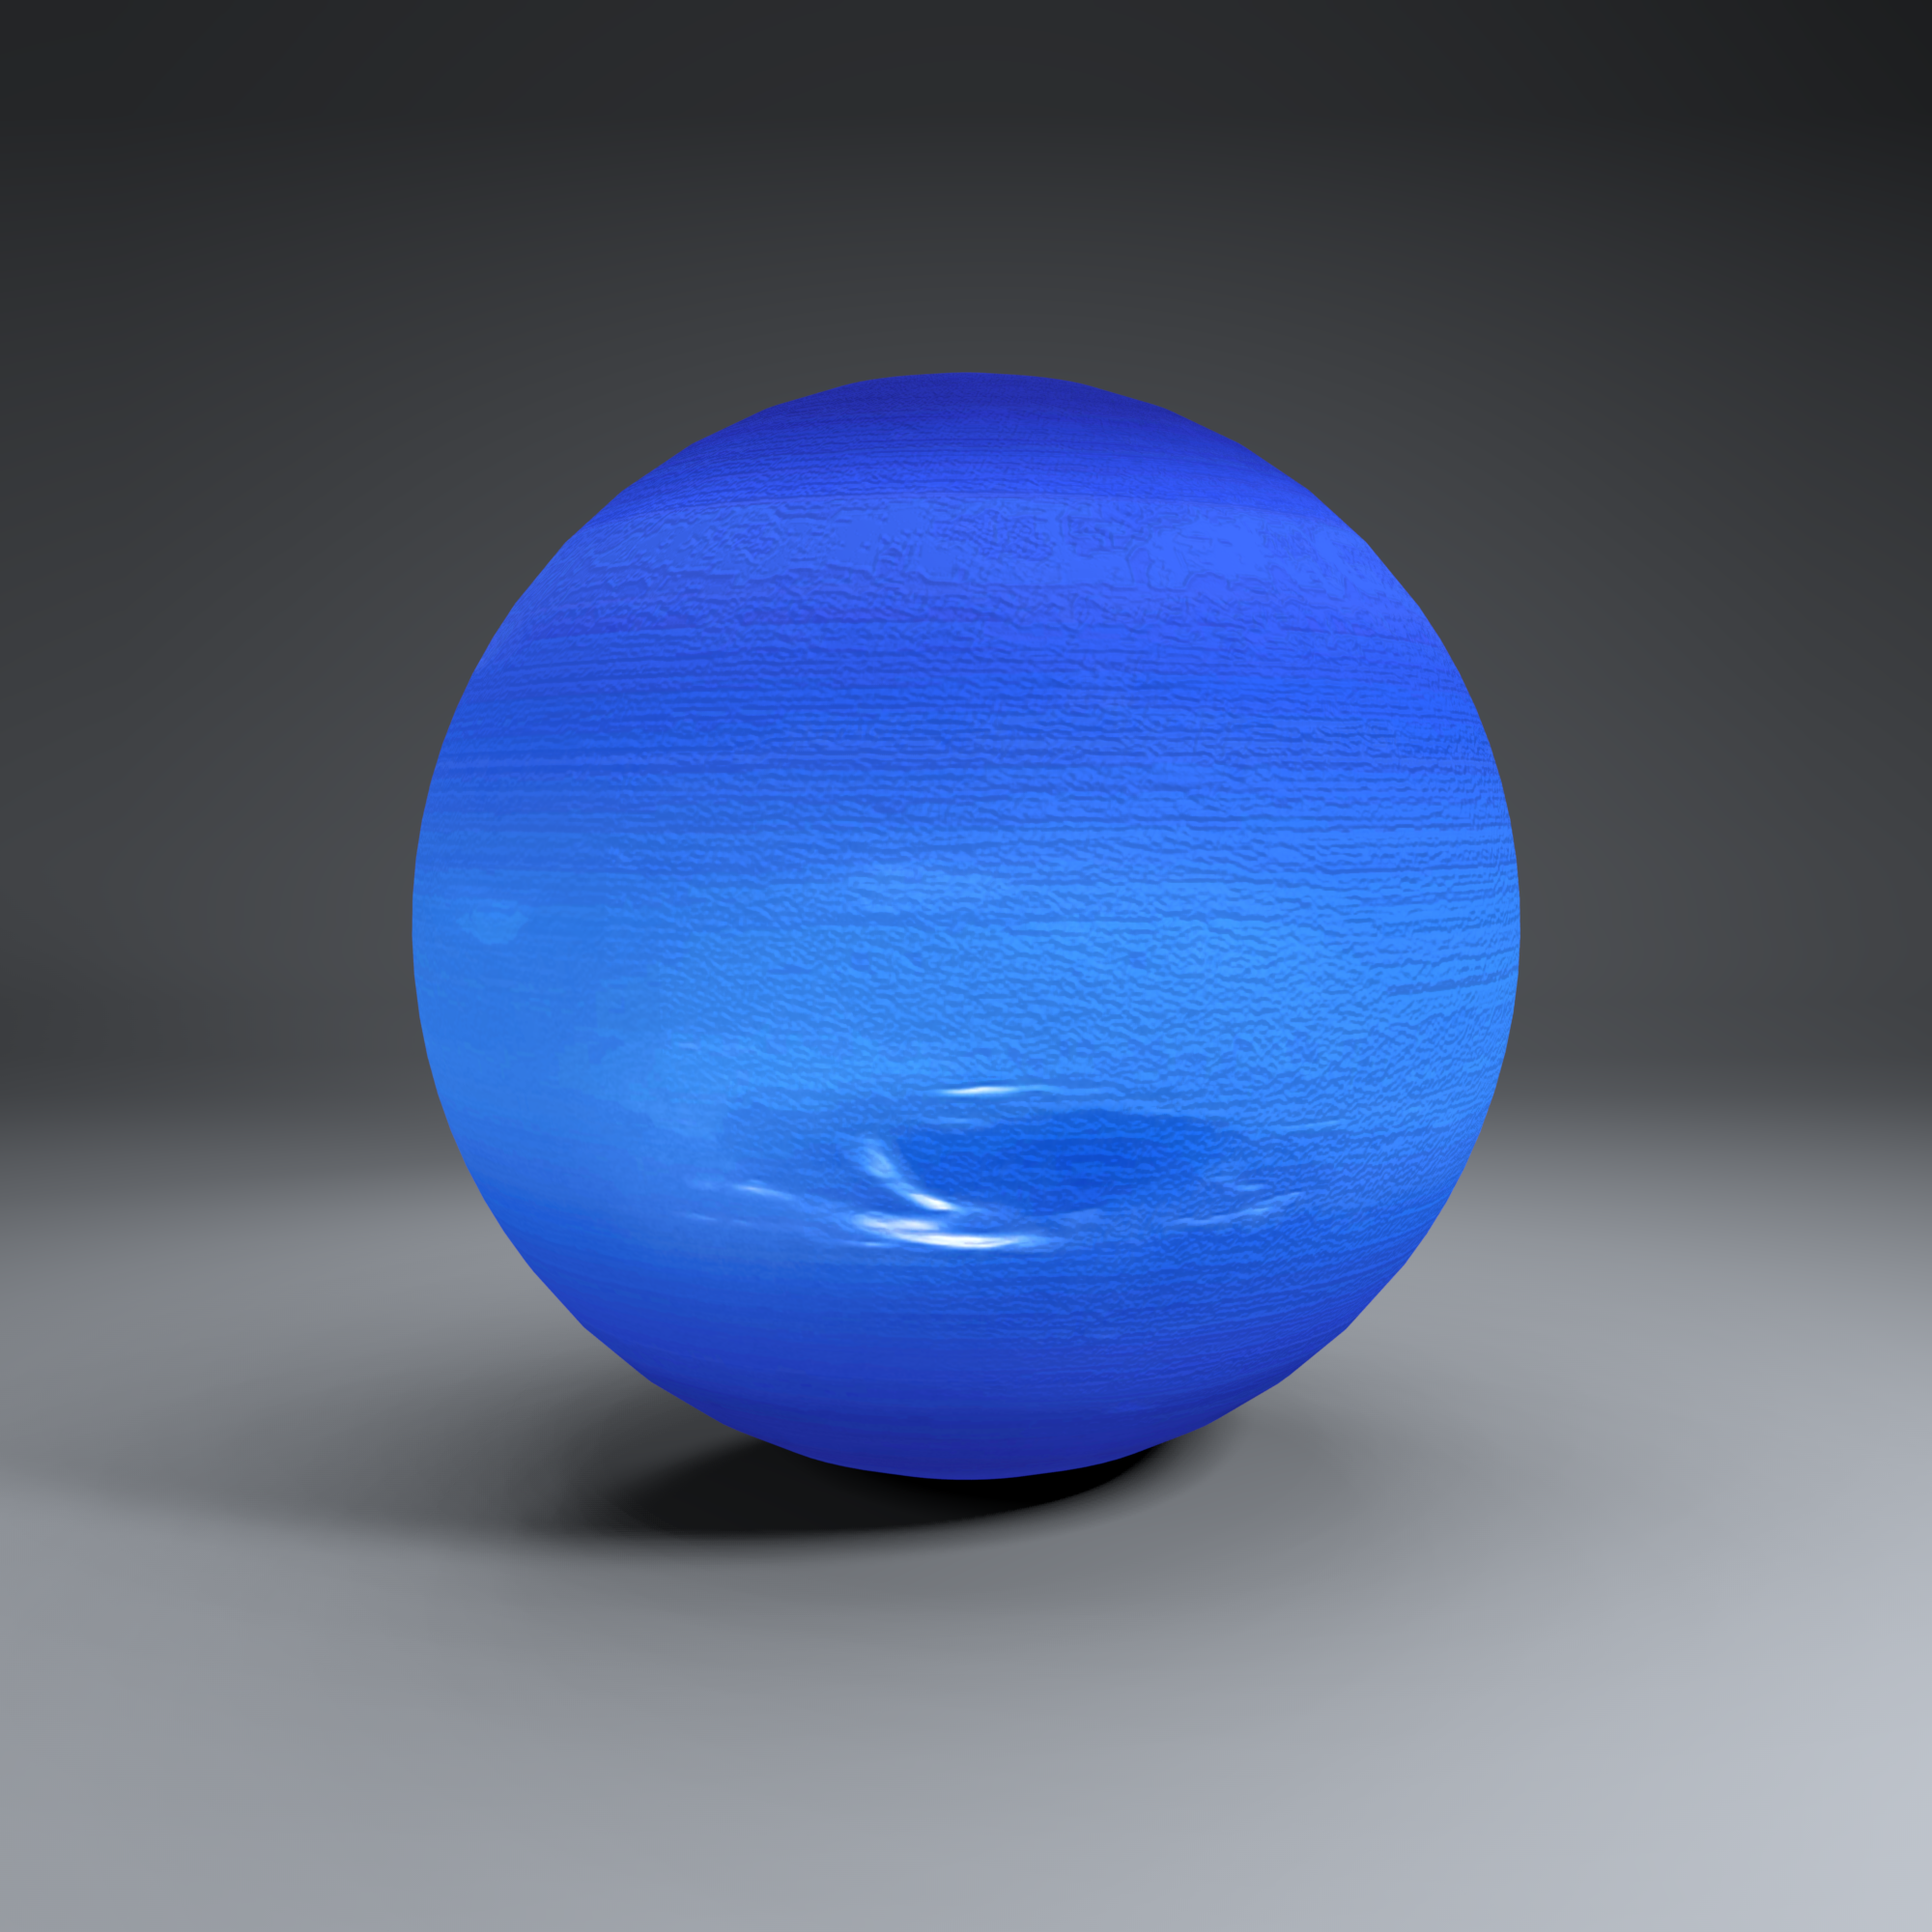 neptune 2k globe 3d model 3ds fbx blend dae obj 269170